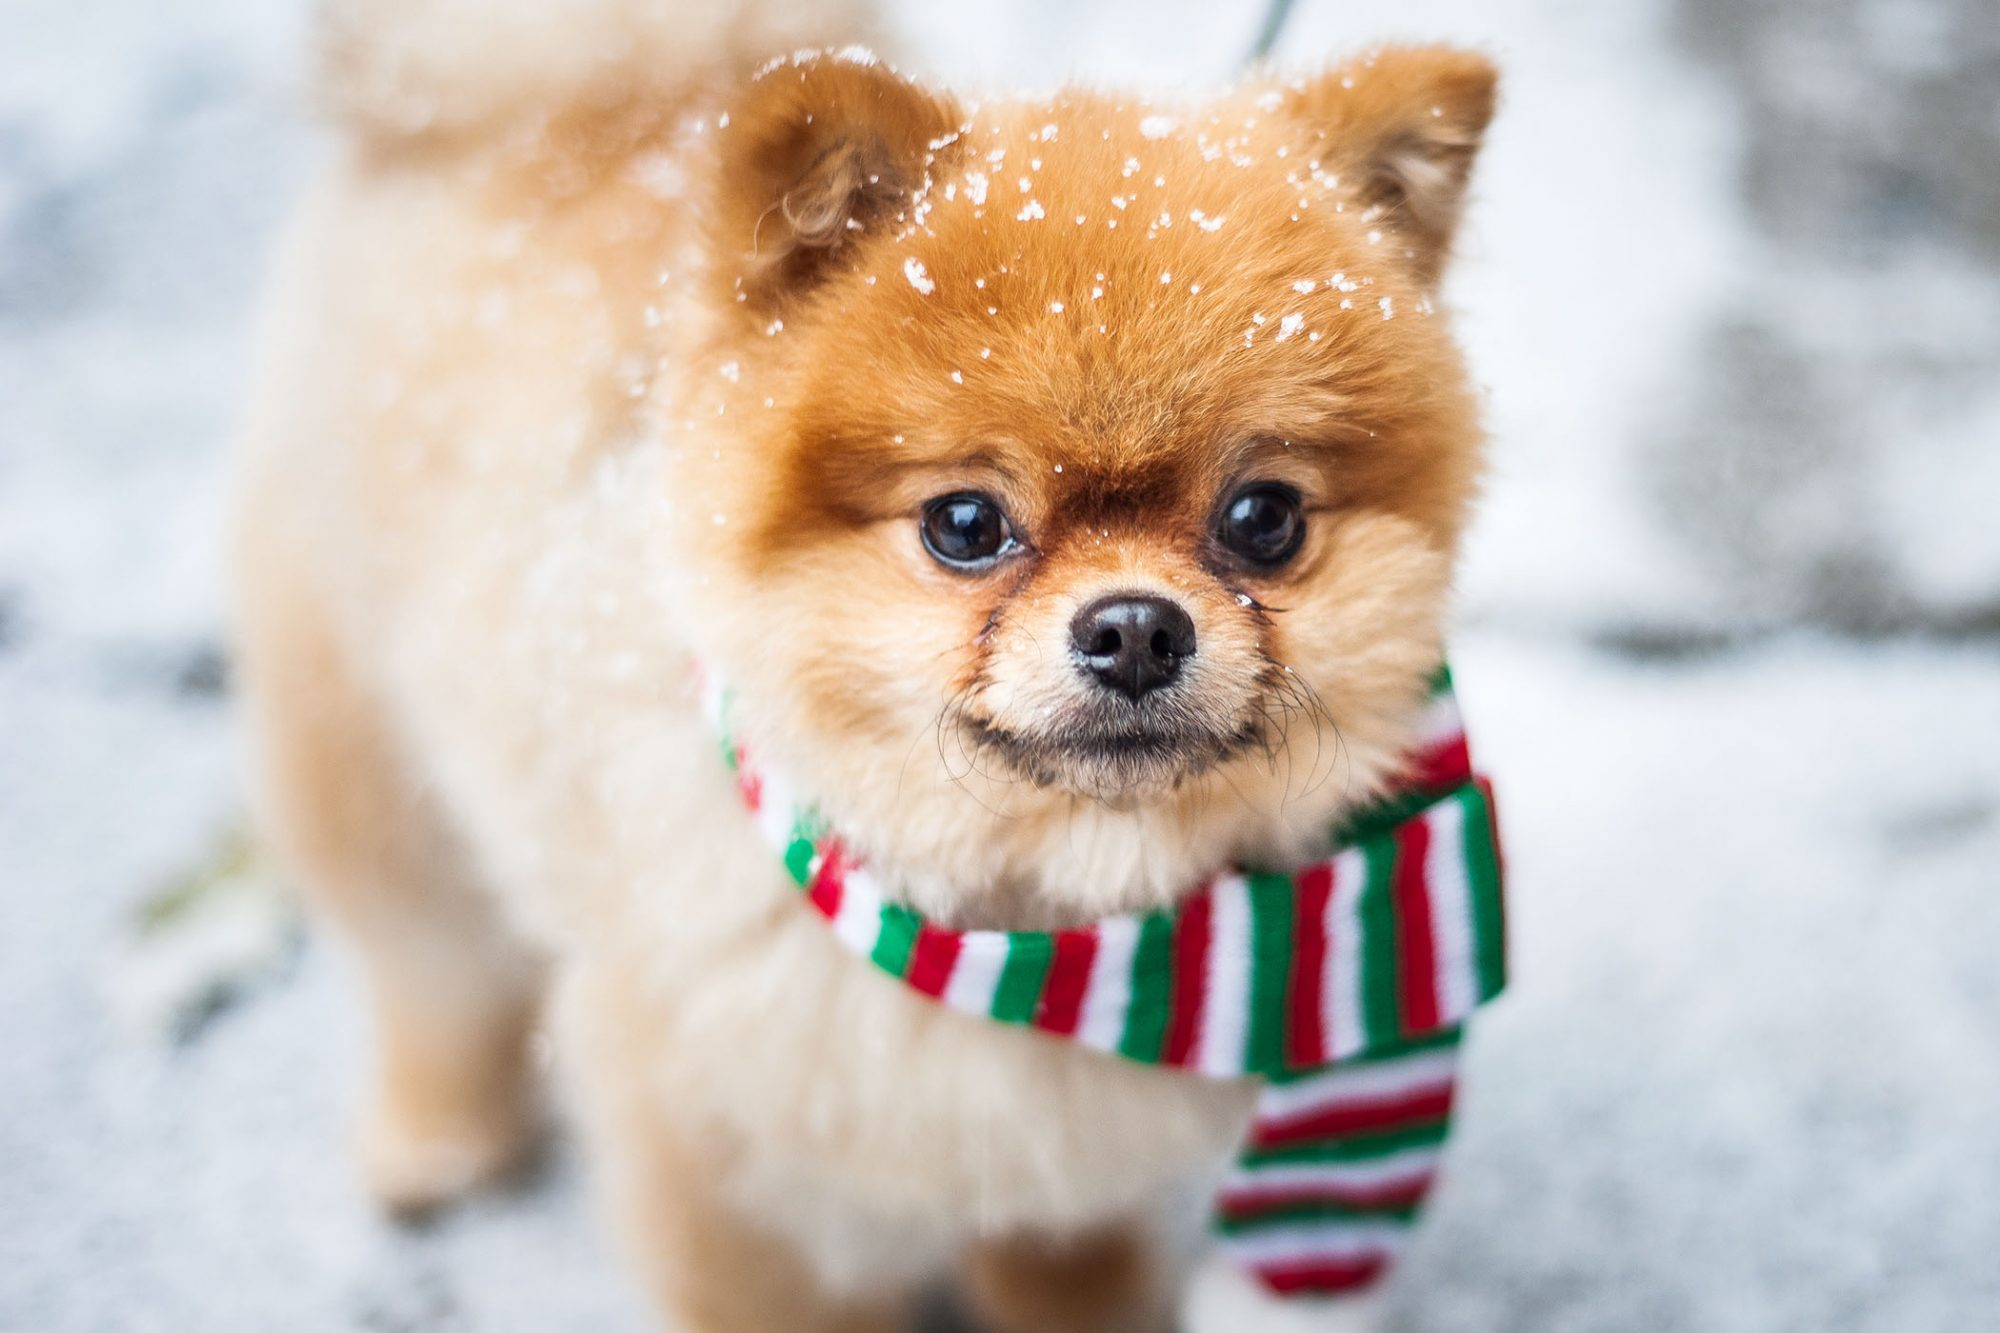 pomperanian pup with scarf in snow